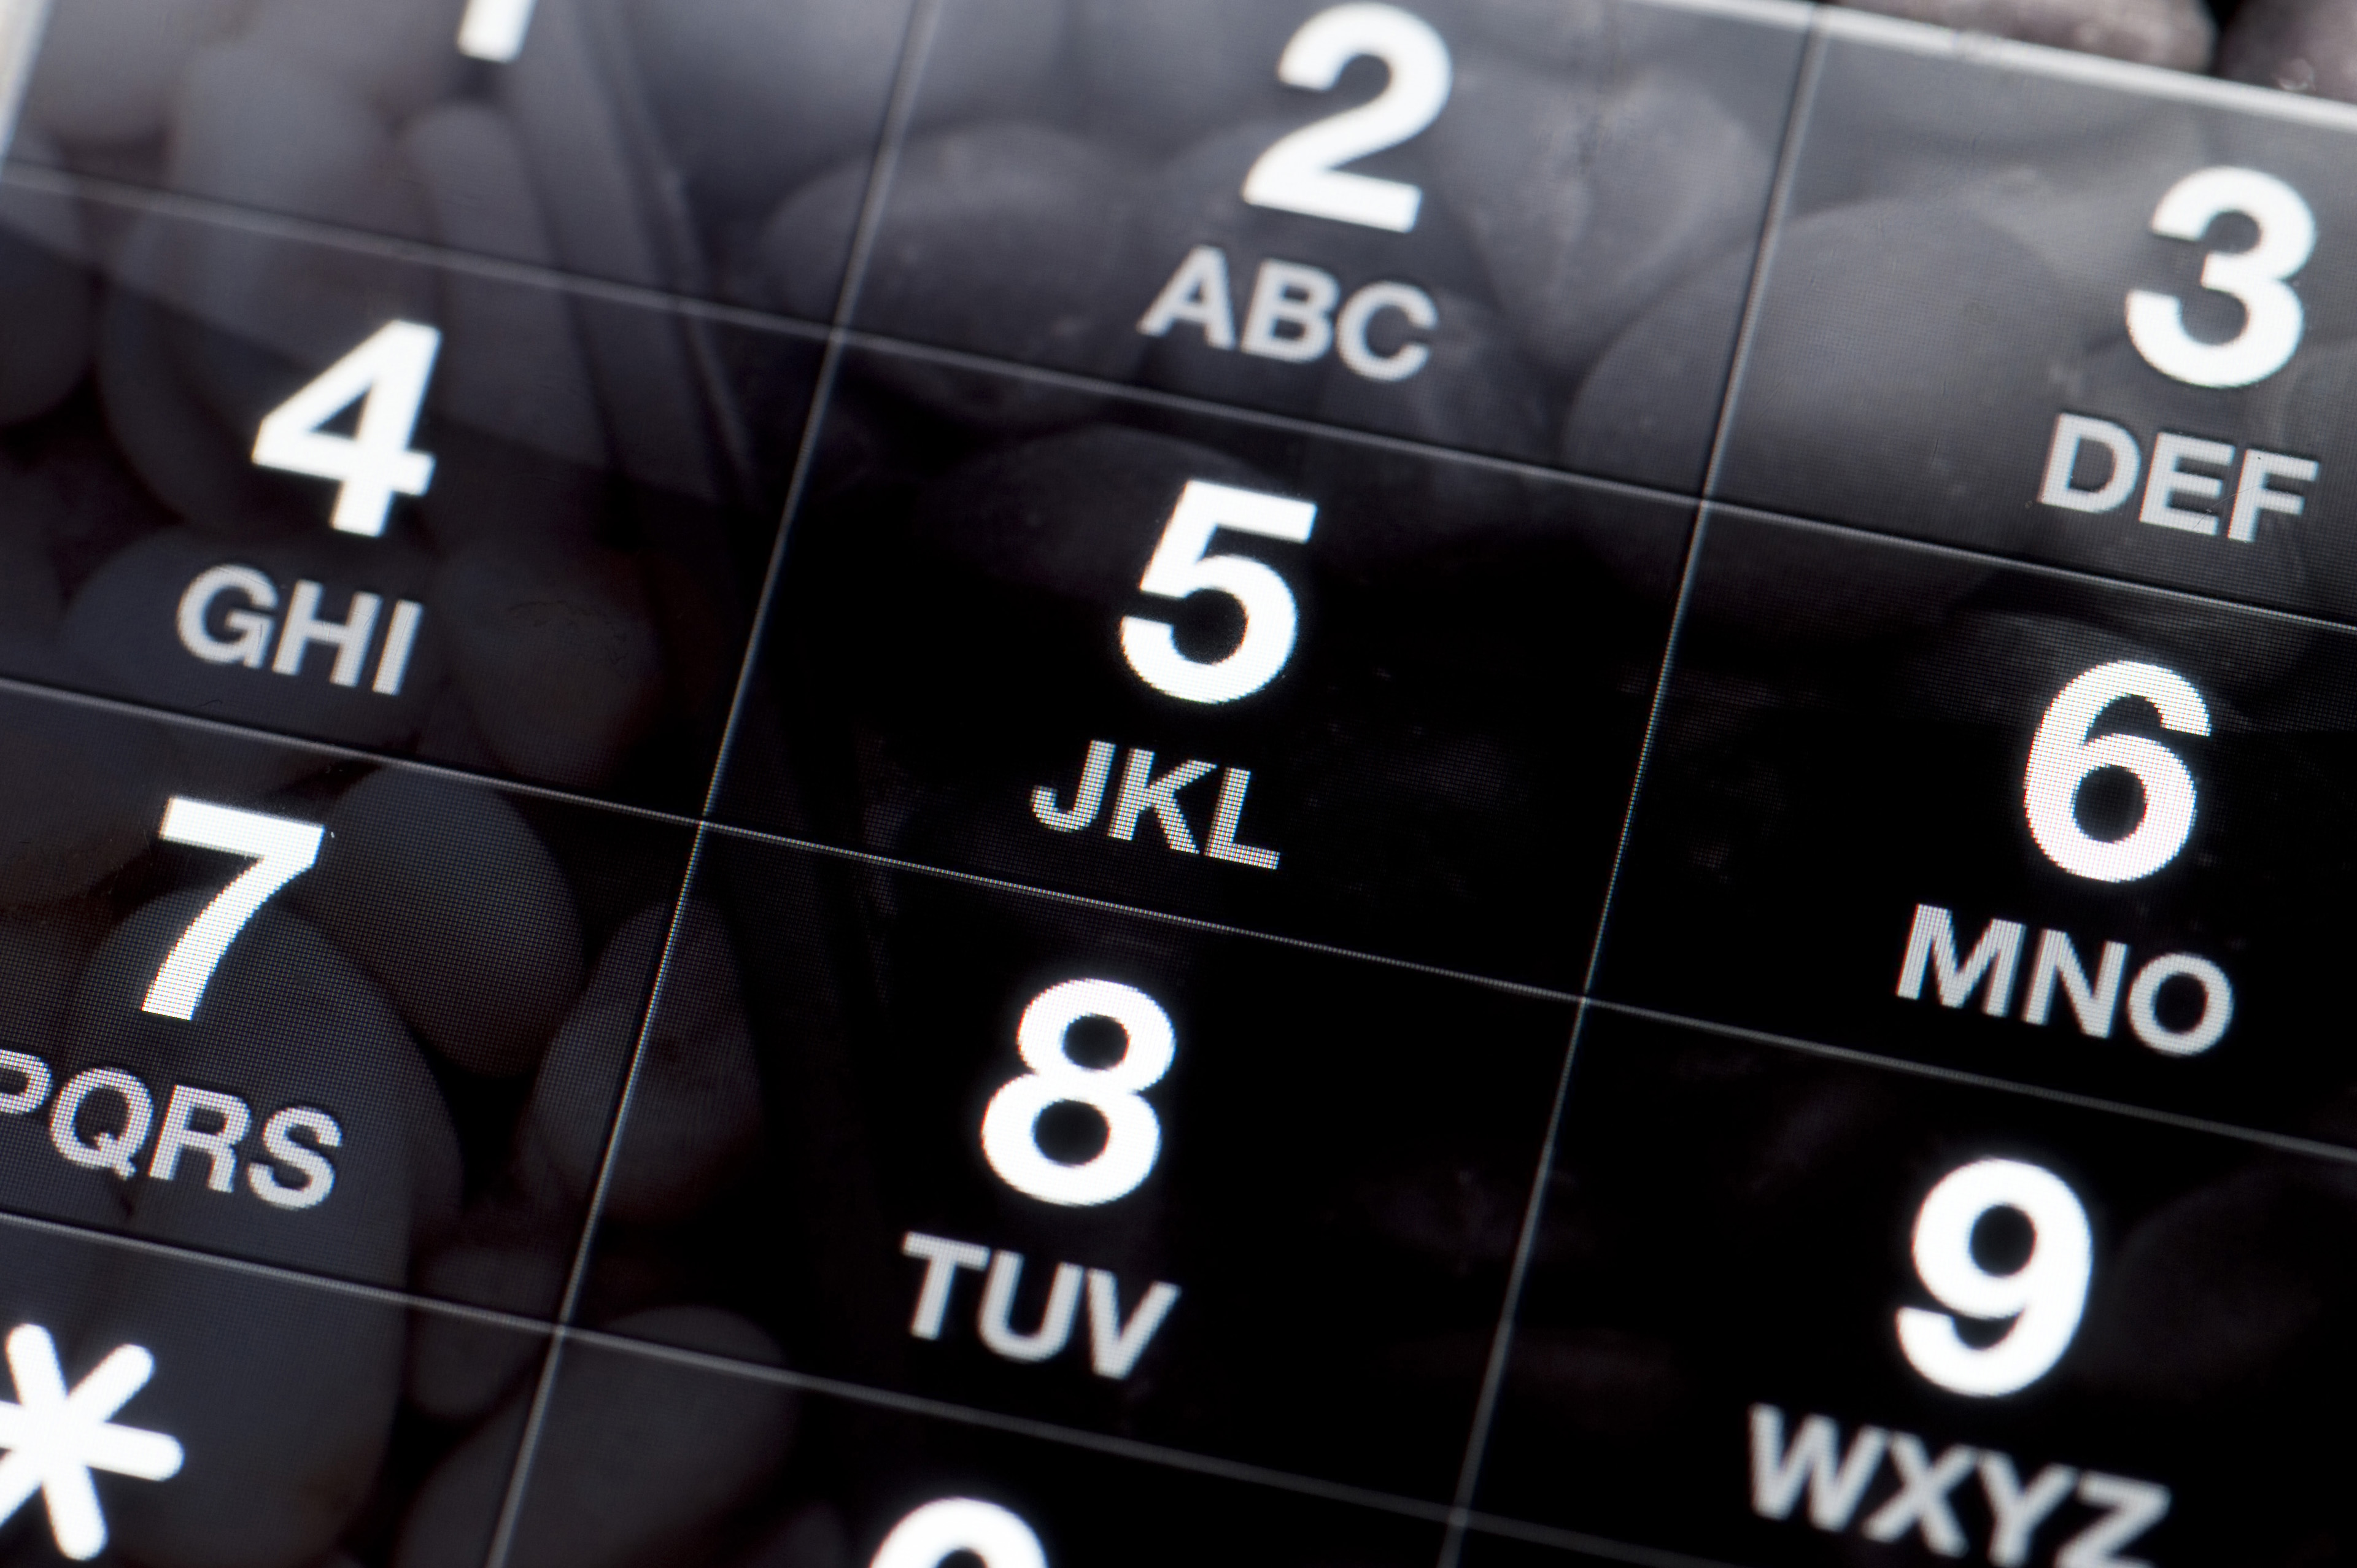 Image of Black and White Dial Pad of a Mobile Phone | Freebie ...